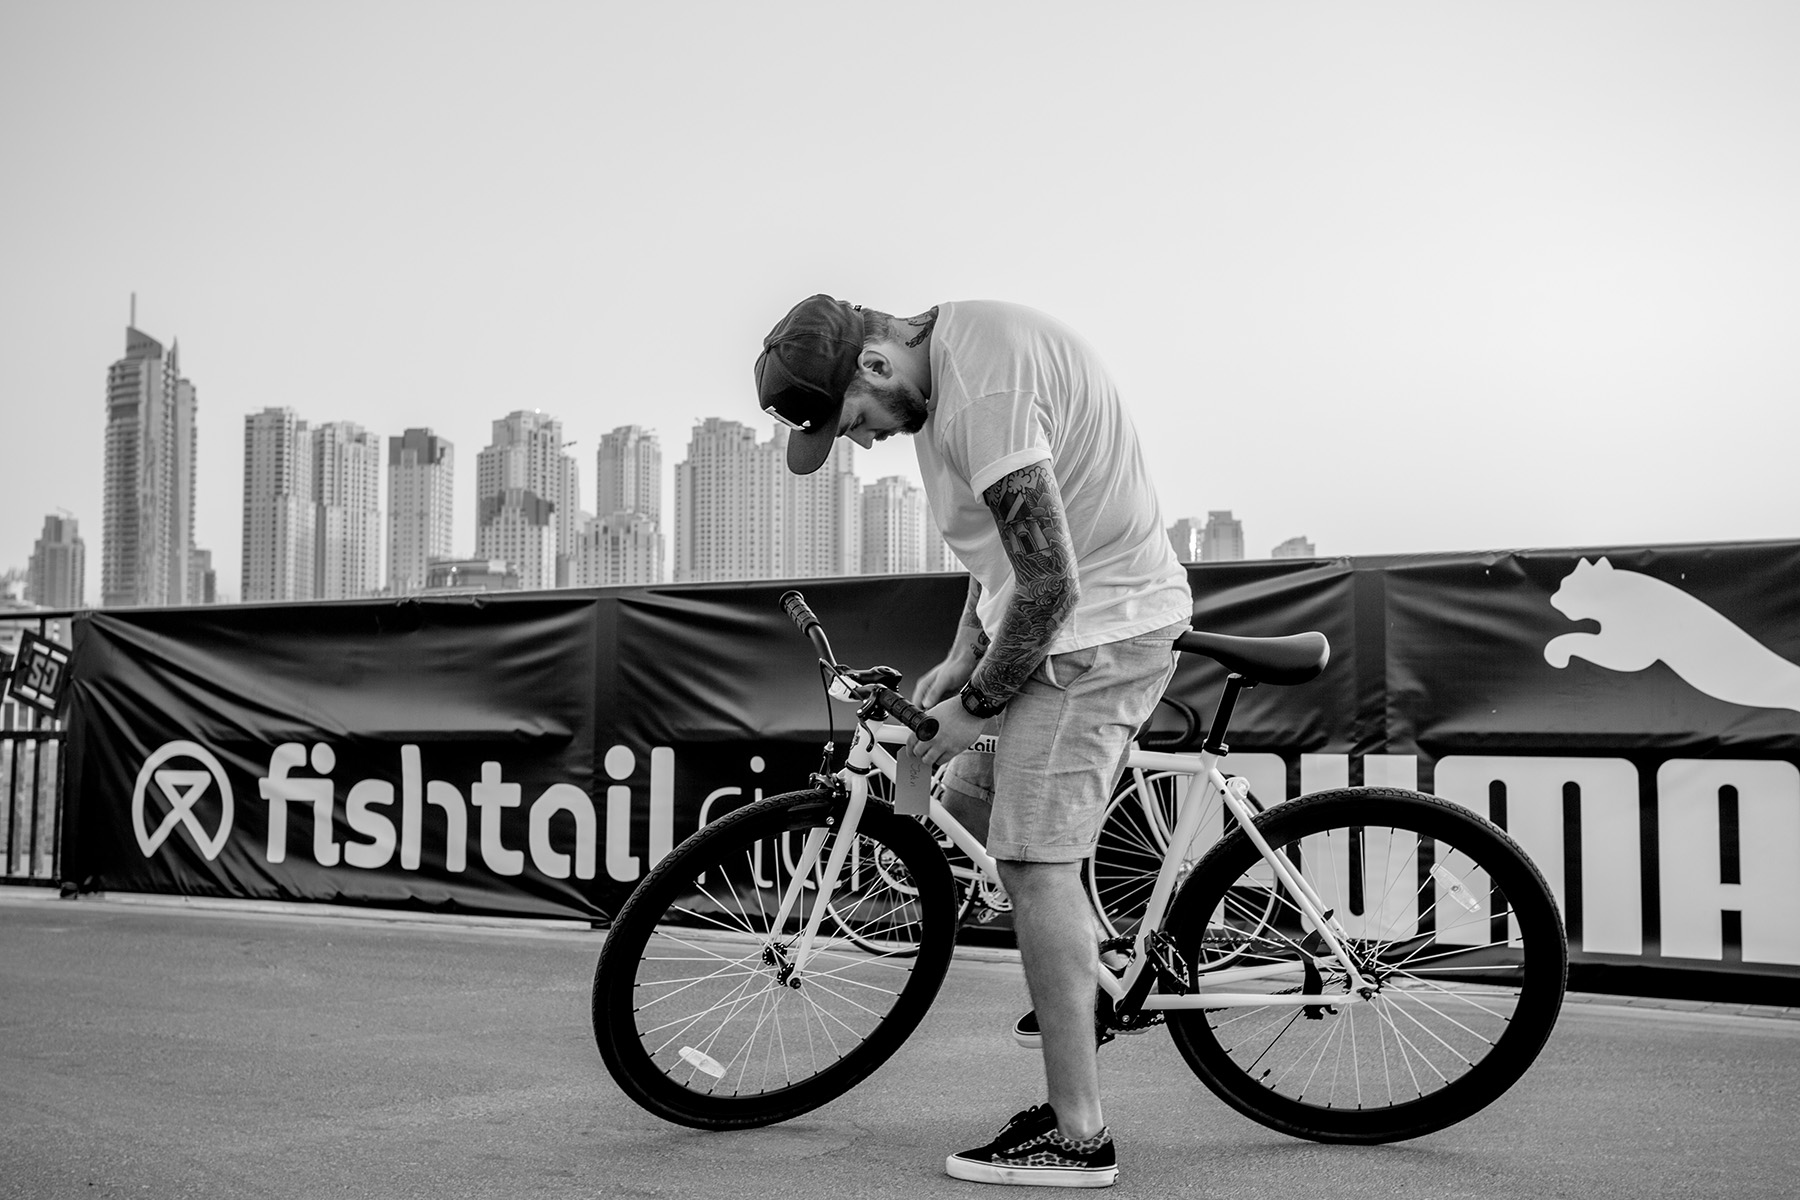 Influencer ready for the PUMA Fishtail ride bike event by Loesje Kessels Fashion Photographer Dubai